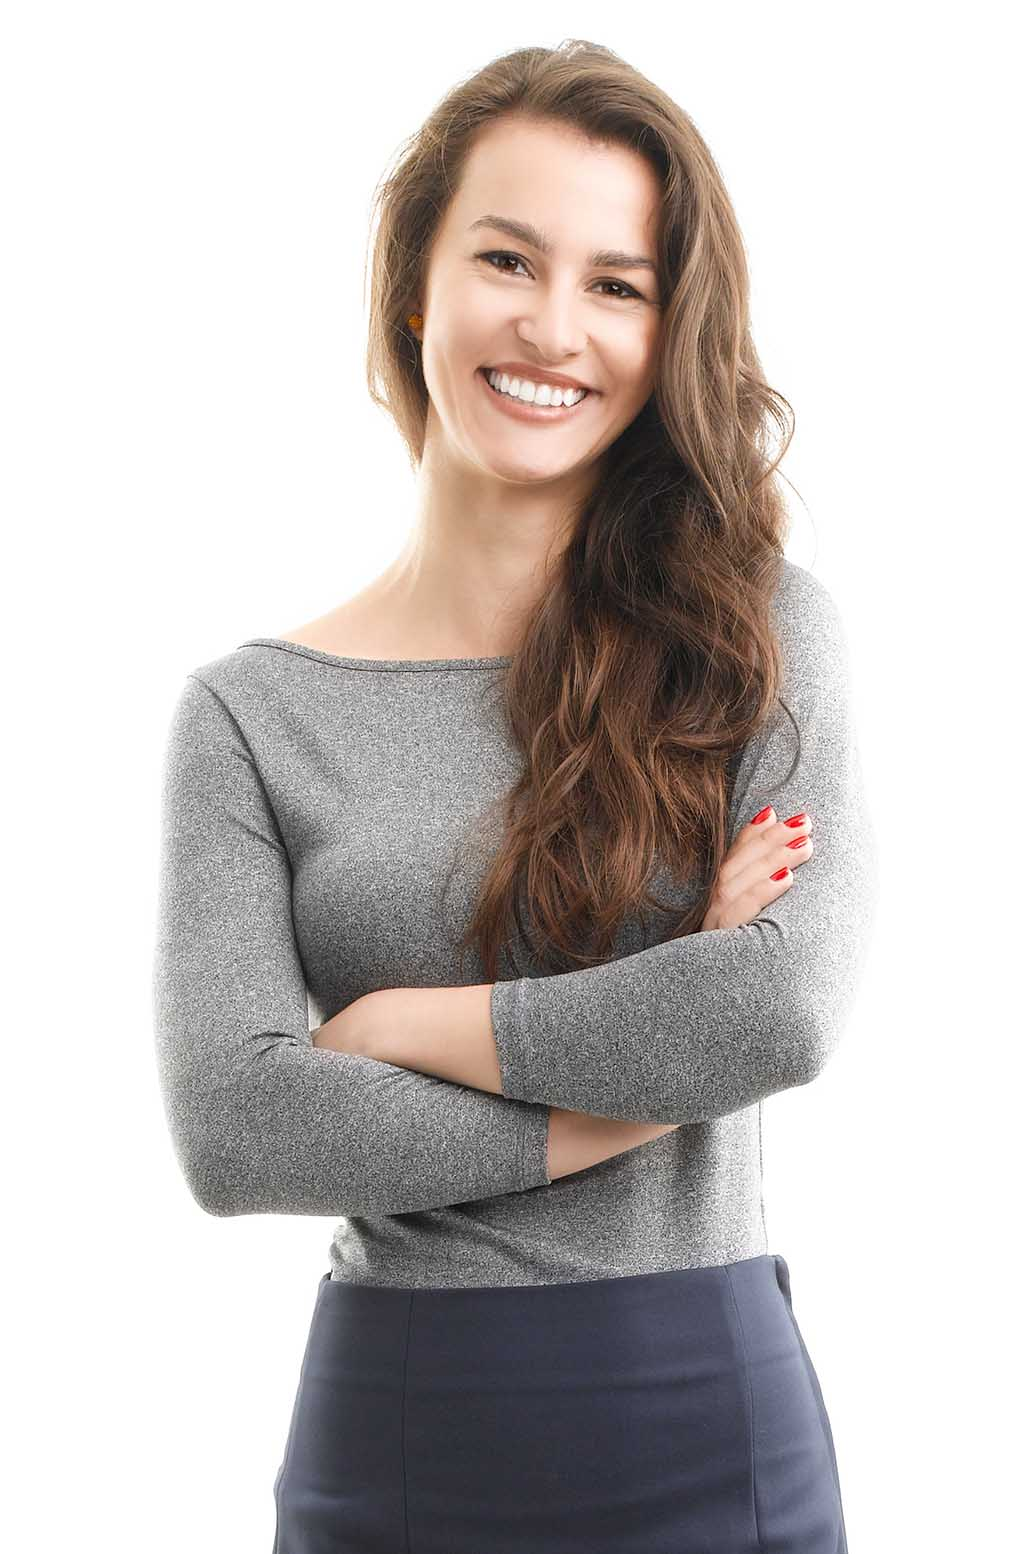 Lady with arms crossed smiling